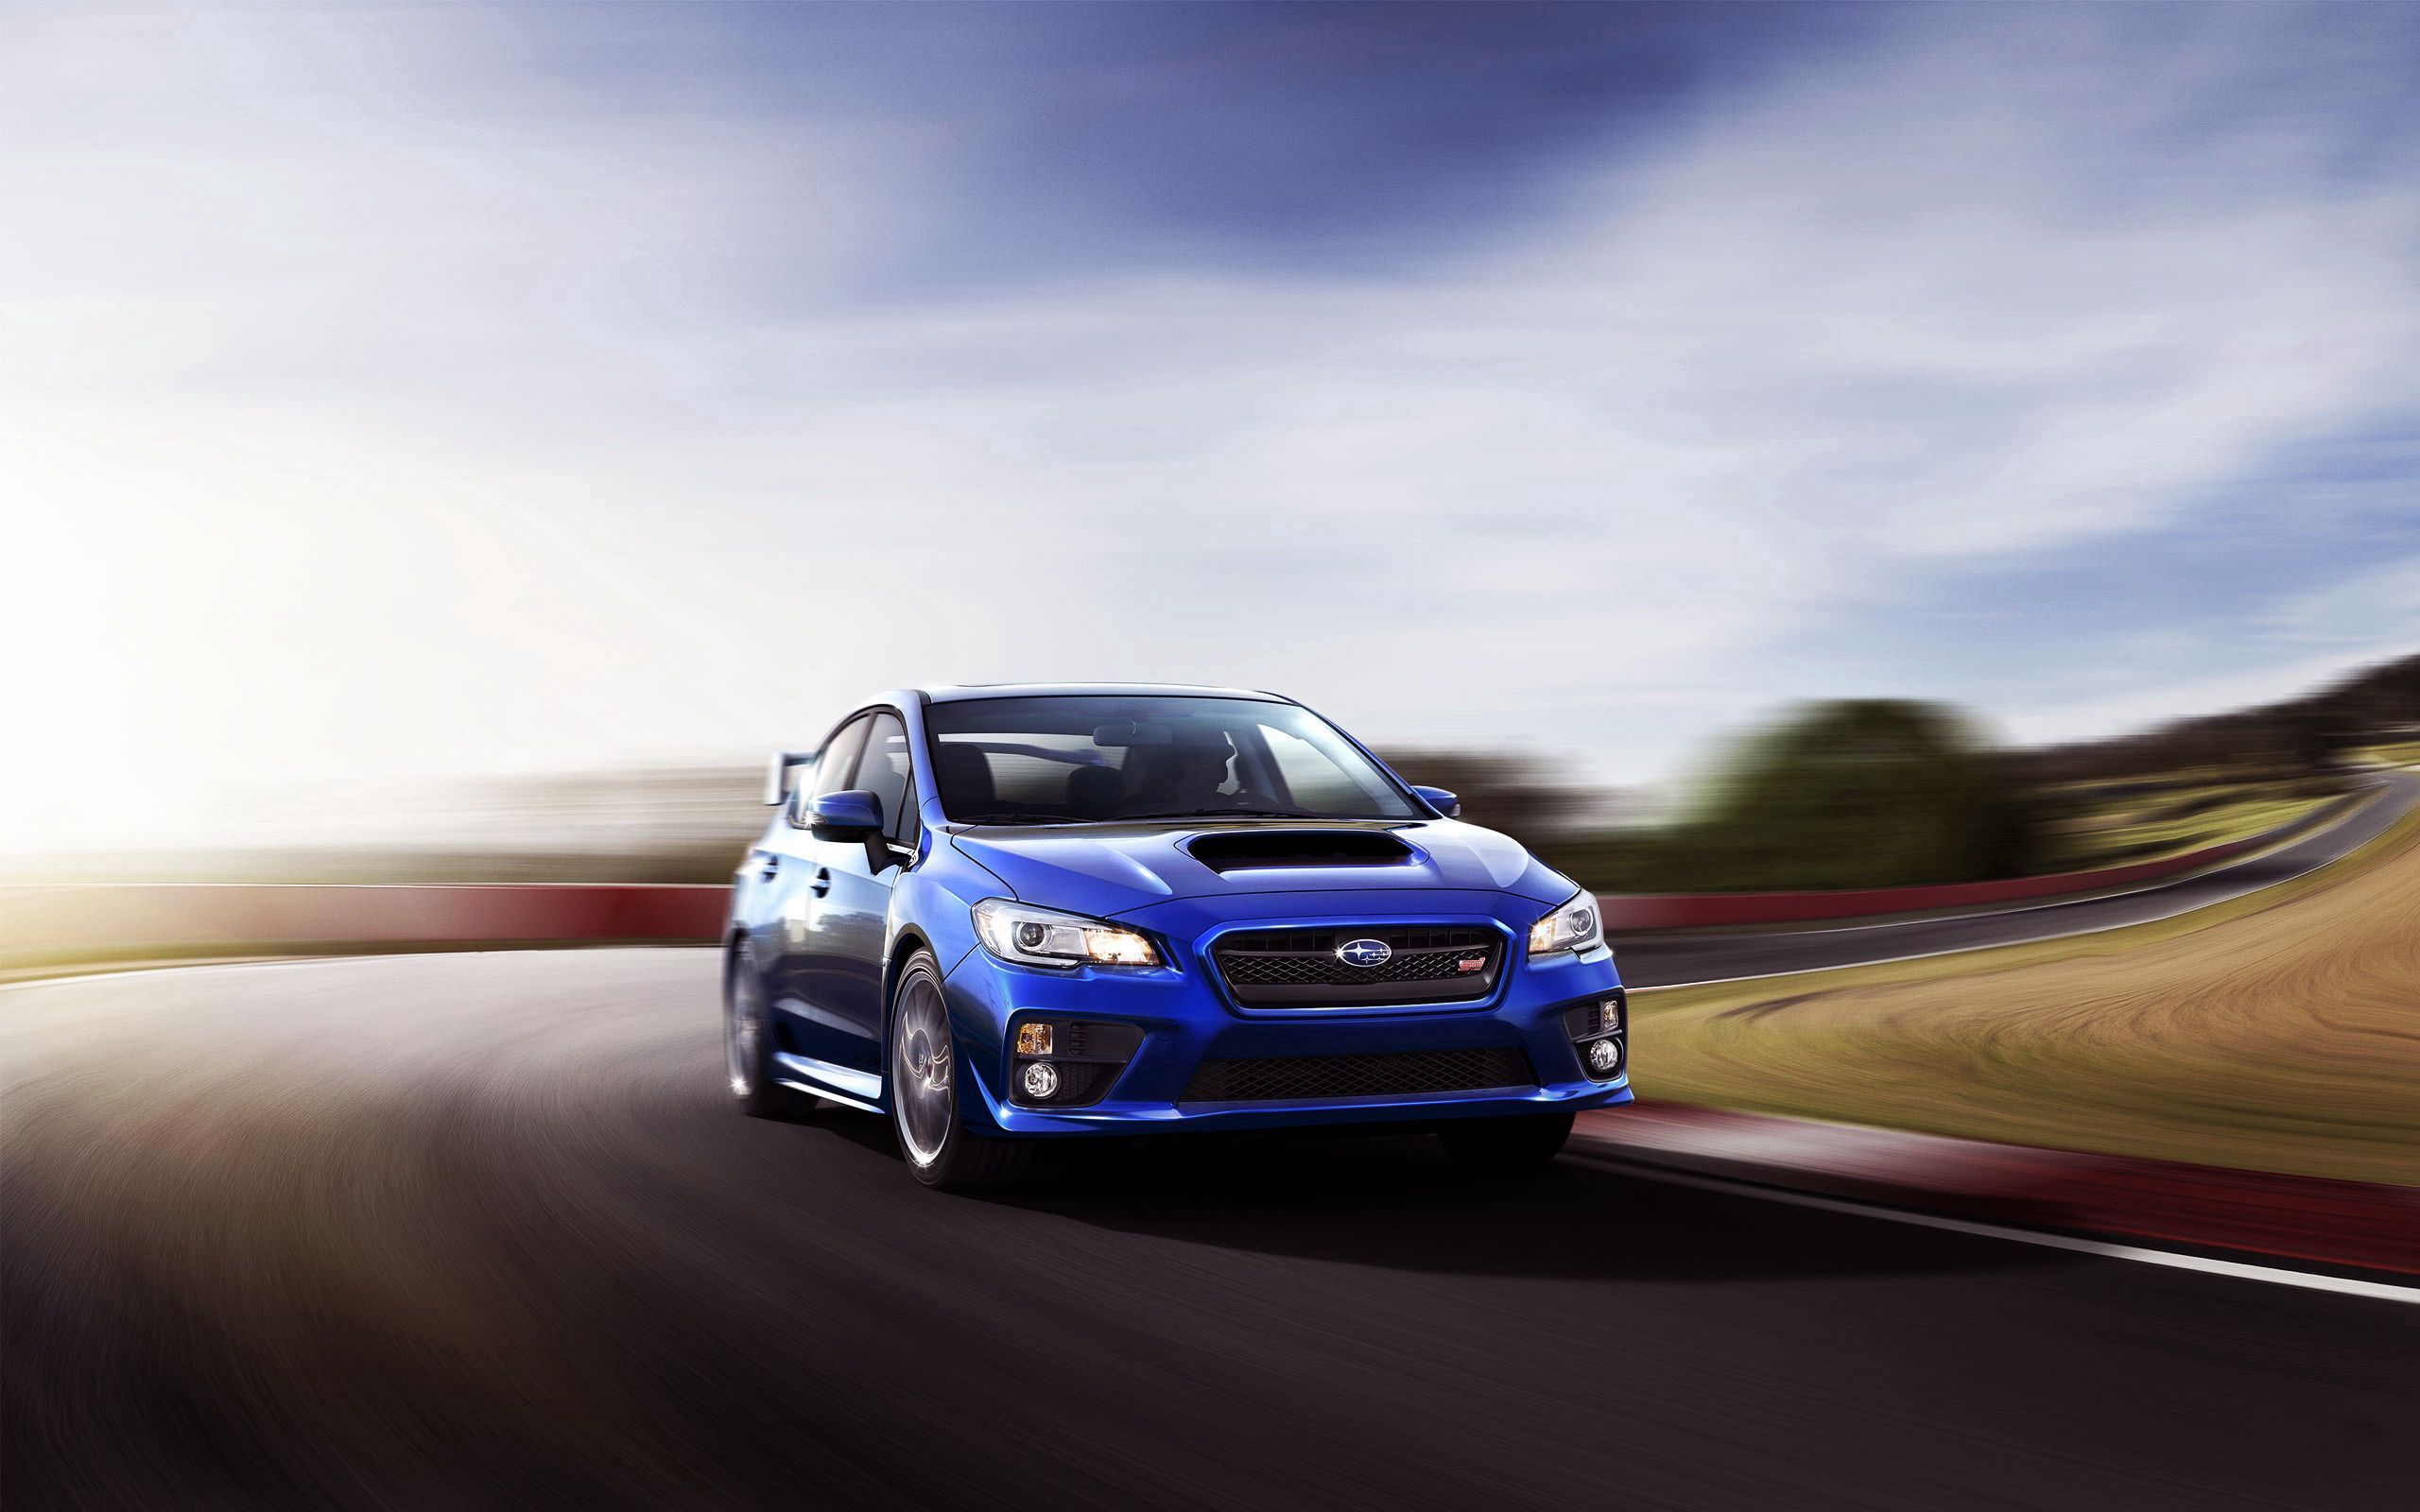 81688 download wallpaper Subaru, Cars, Traffic, Movement, Speed, Wrx, Sti screensavers and pictures for free